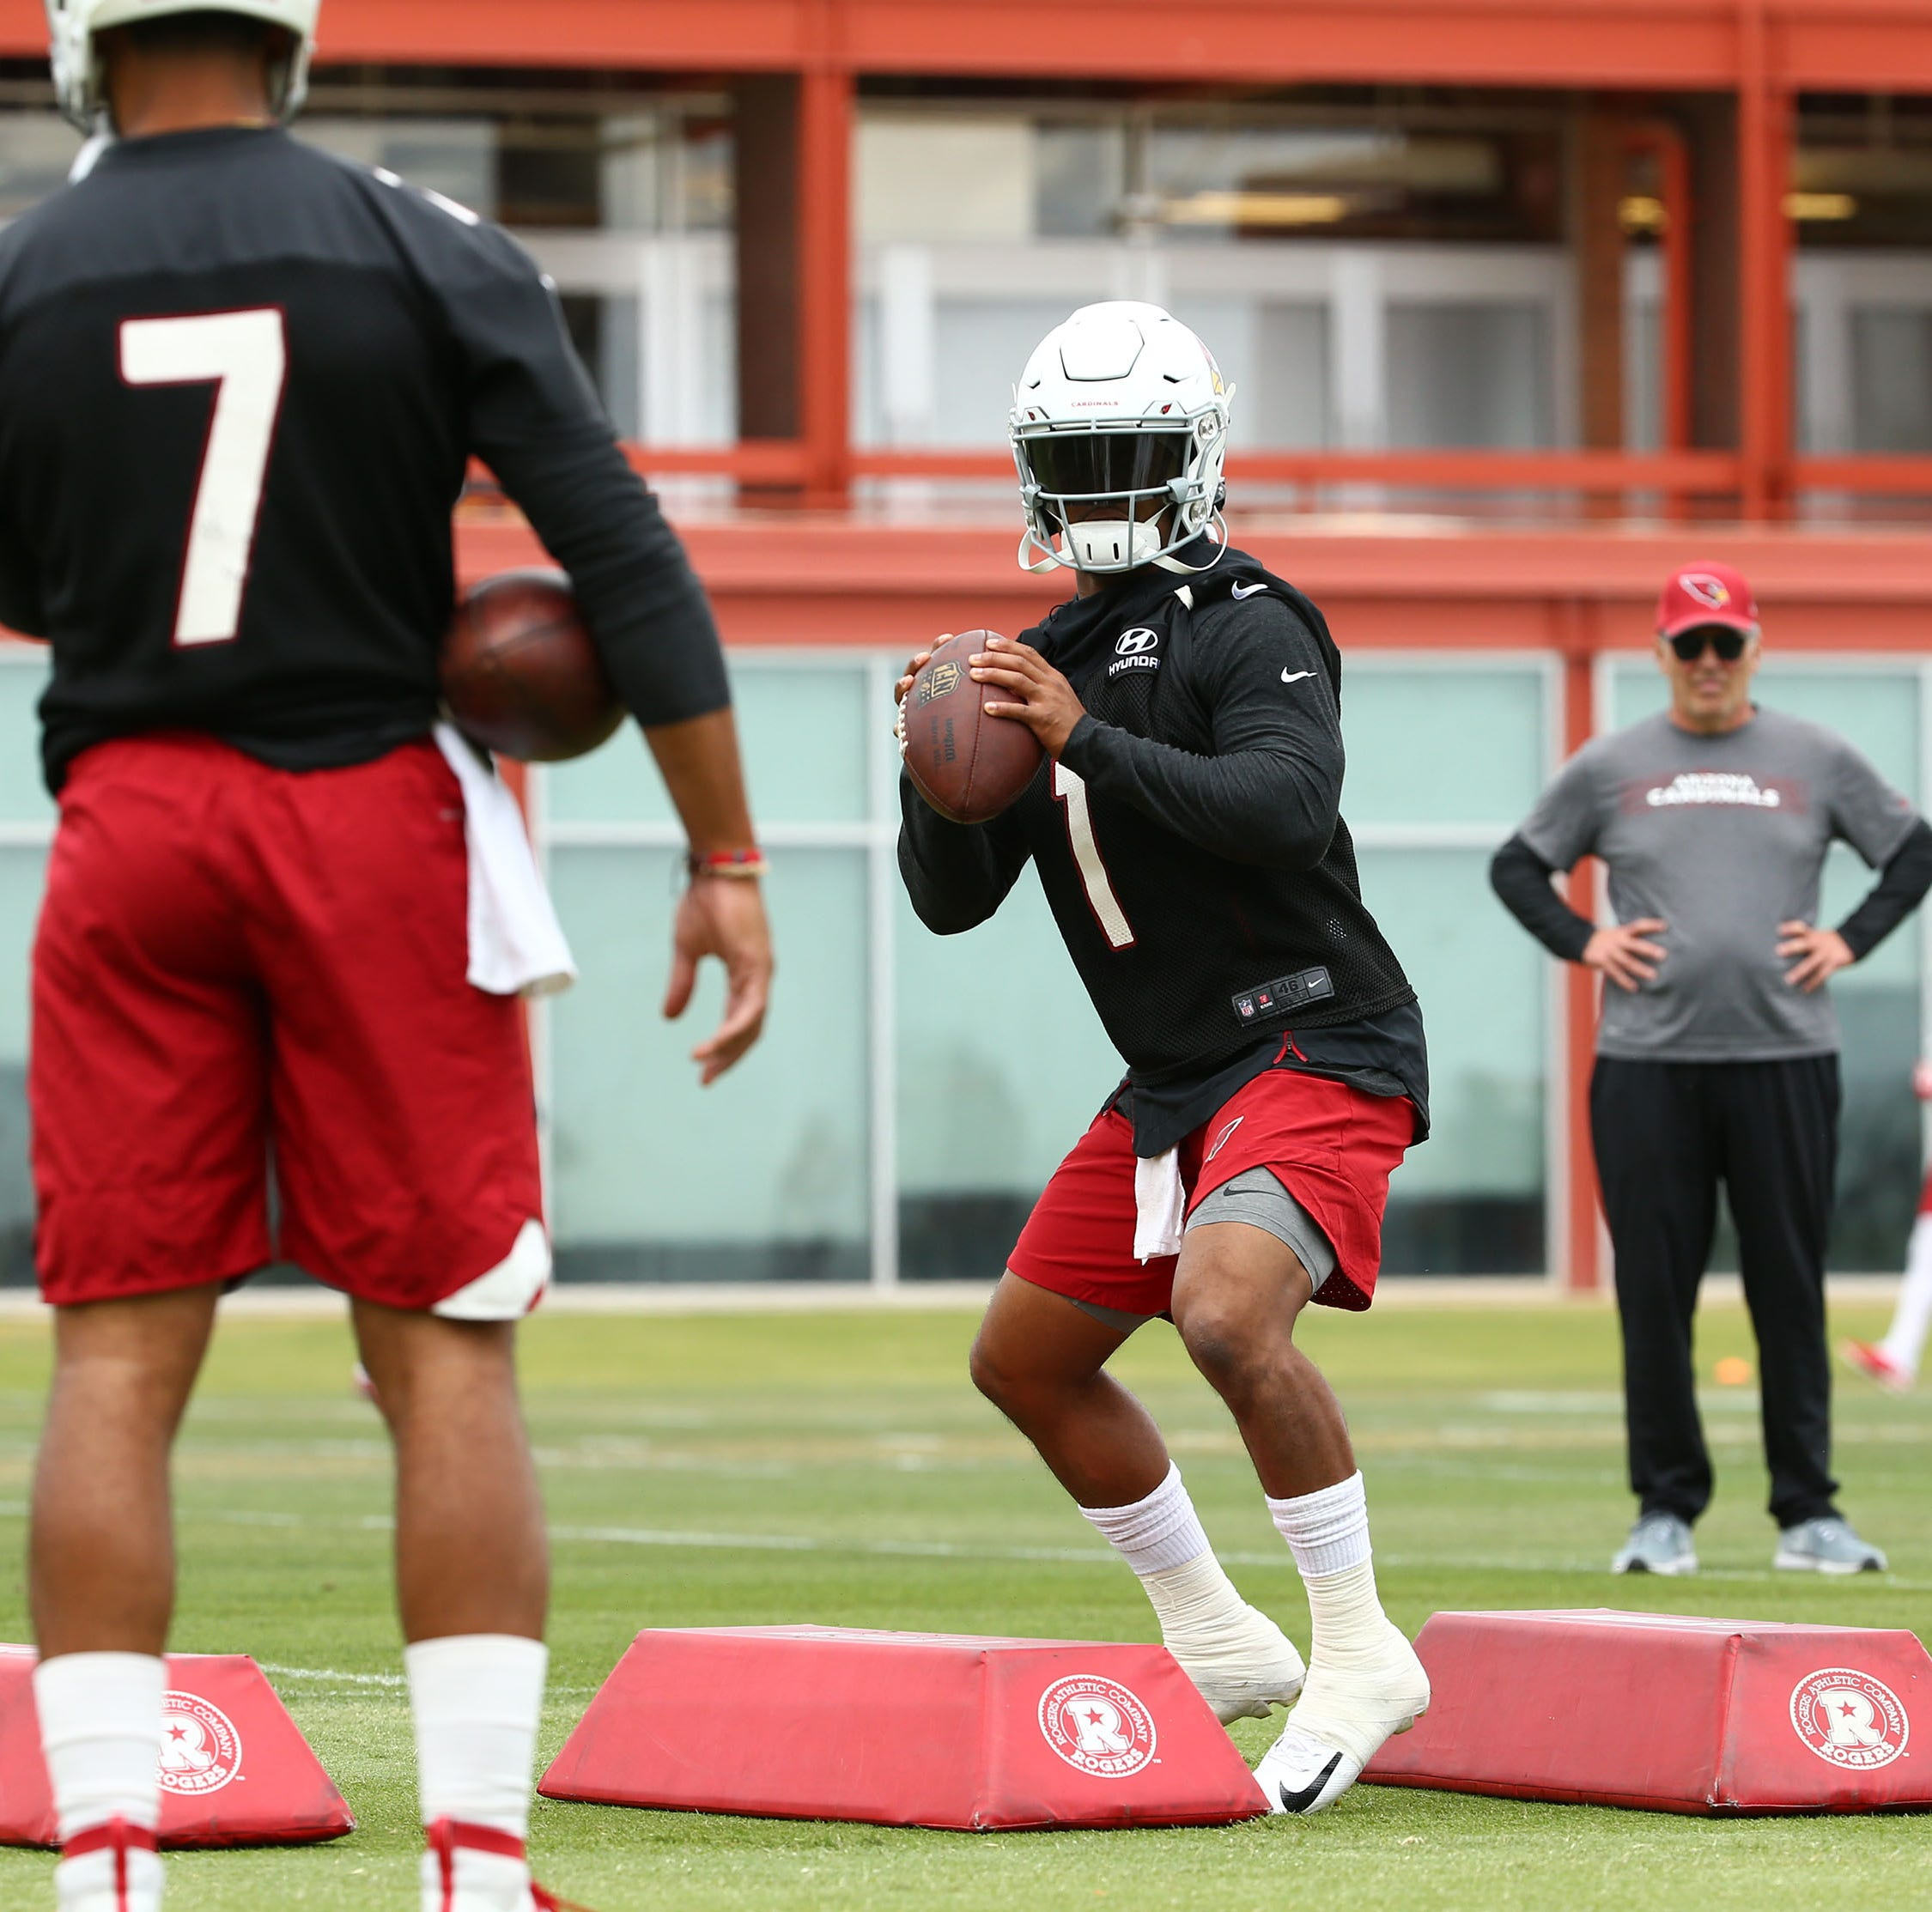 The Shotgun show: Don't expect Arizona Cardinals' Kyler Murray under center much